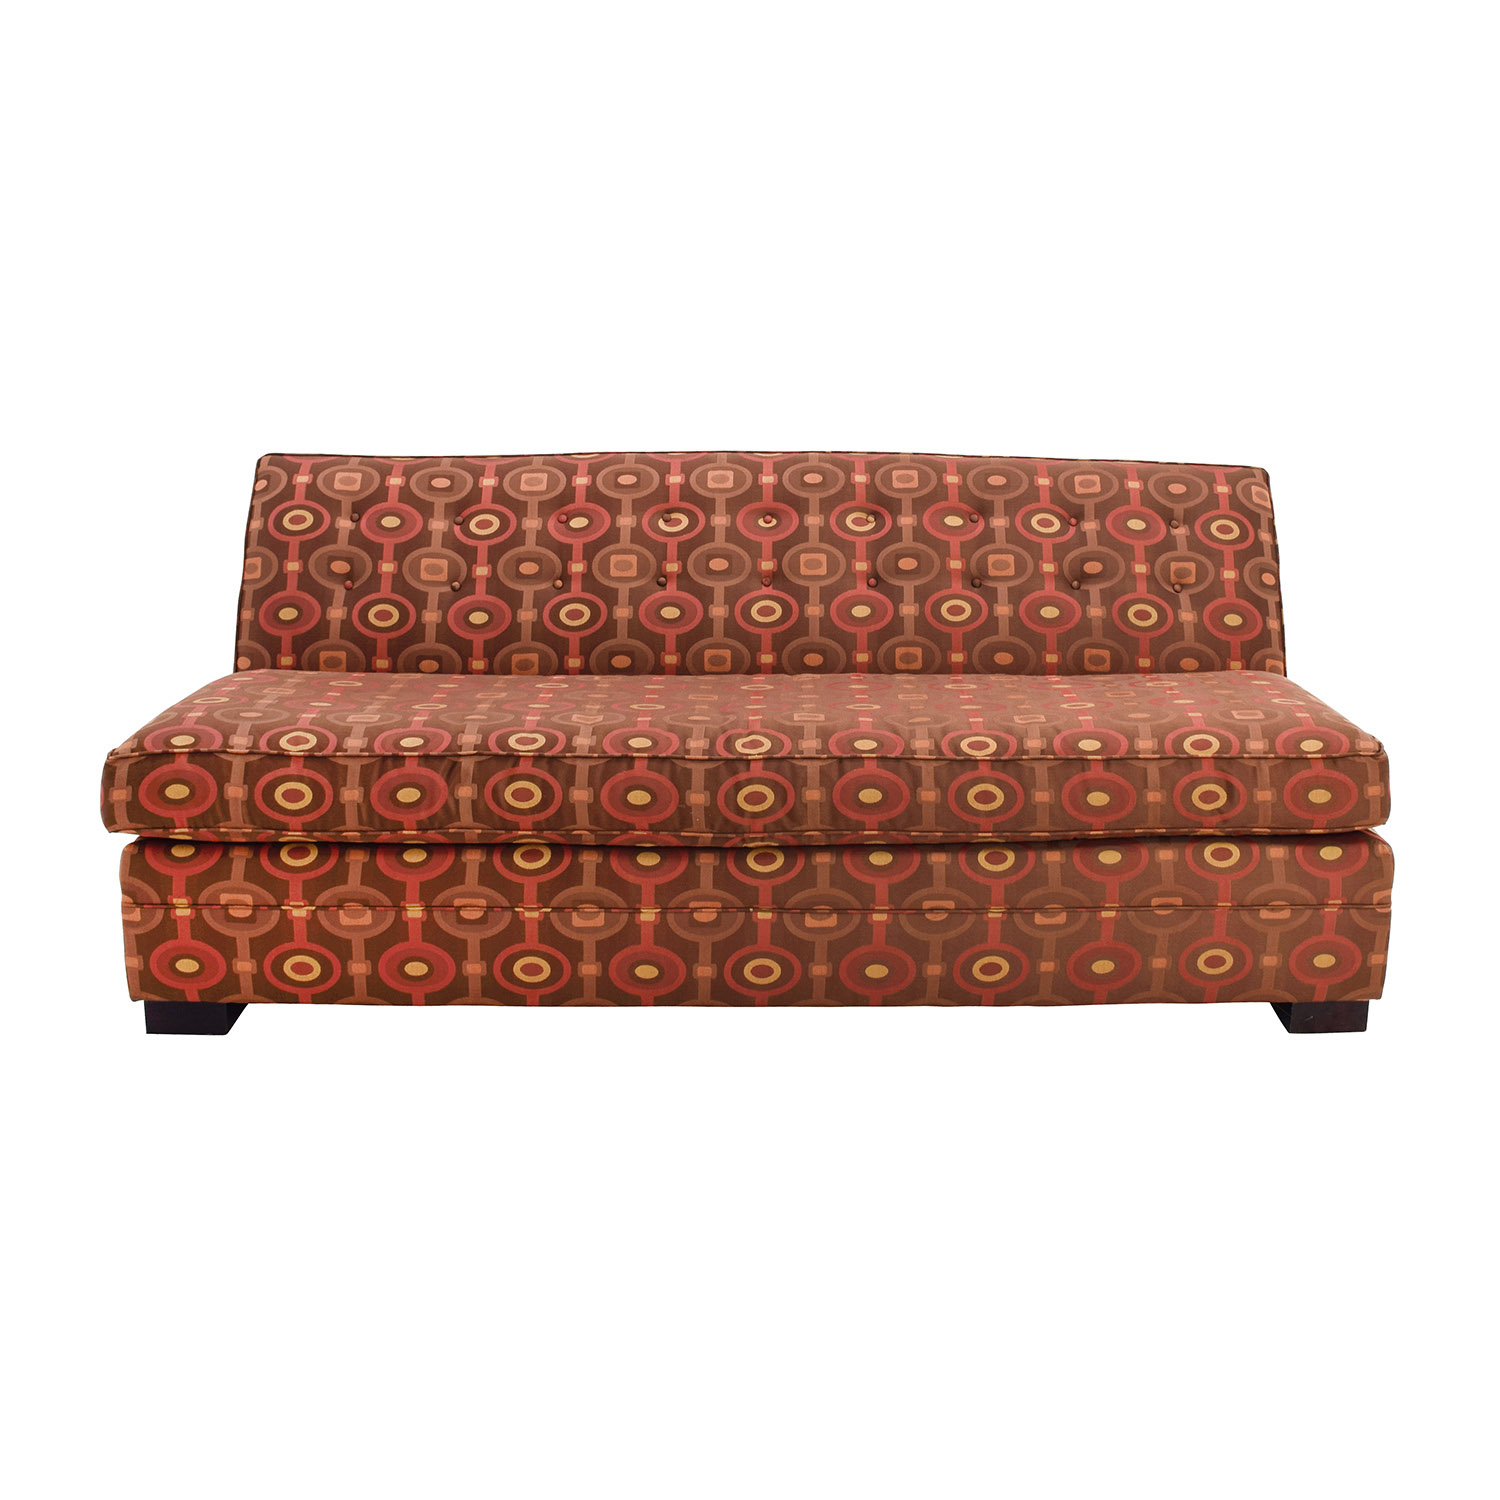 Mitchell Gold & Bob Williams Mitchell Gold & Bob Williams Asymmetrical Design Fabric Couch coupon